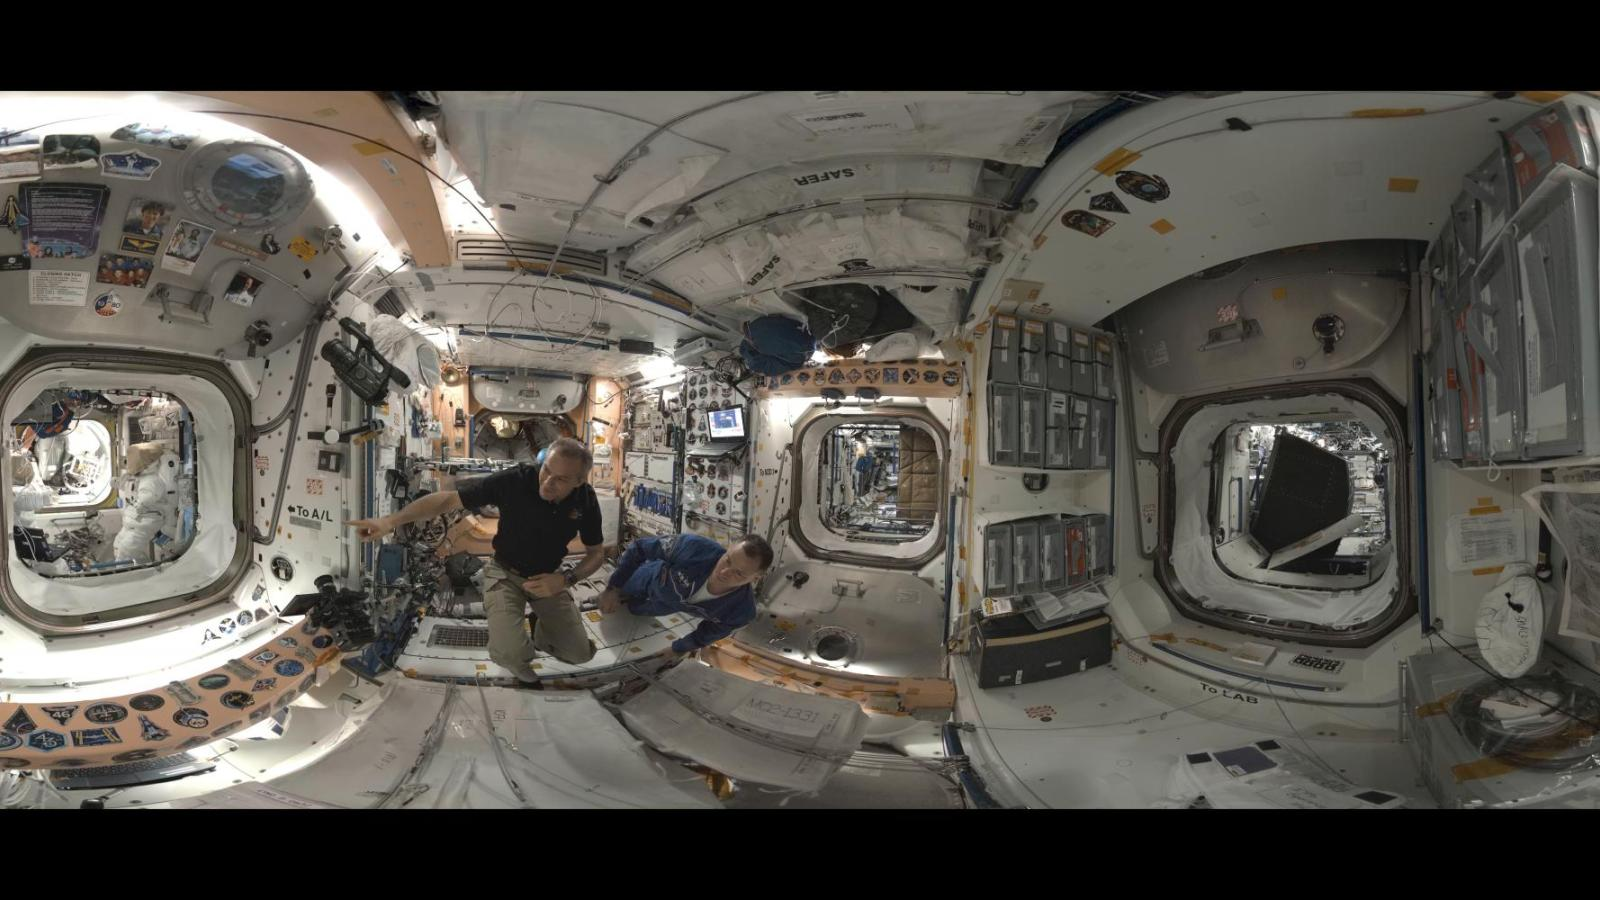 360 degree image of two astronauts working aboard the ISS